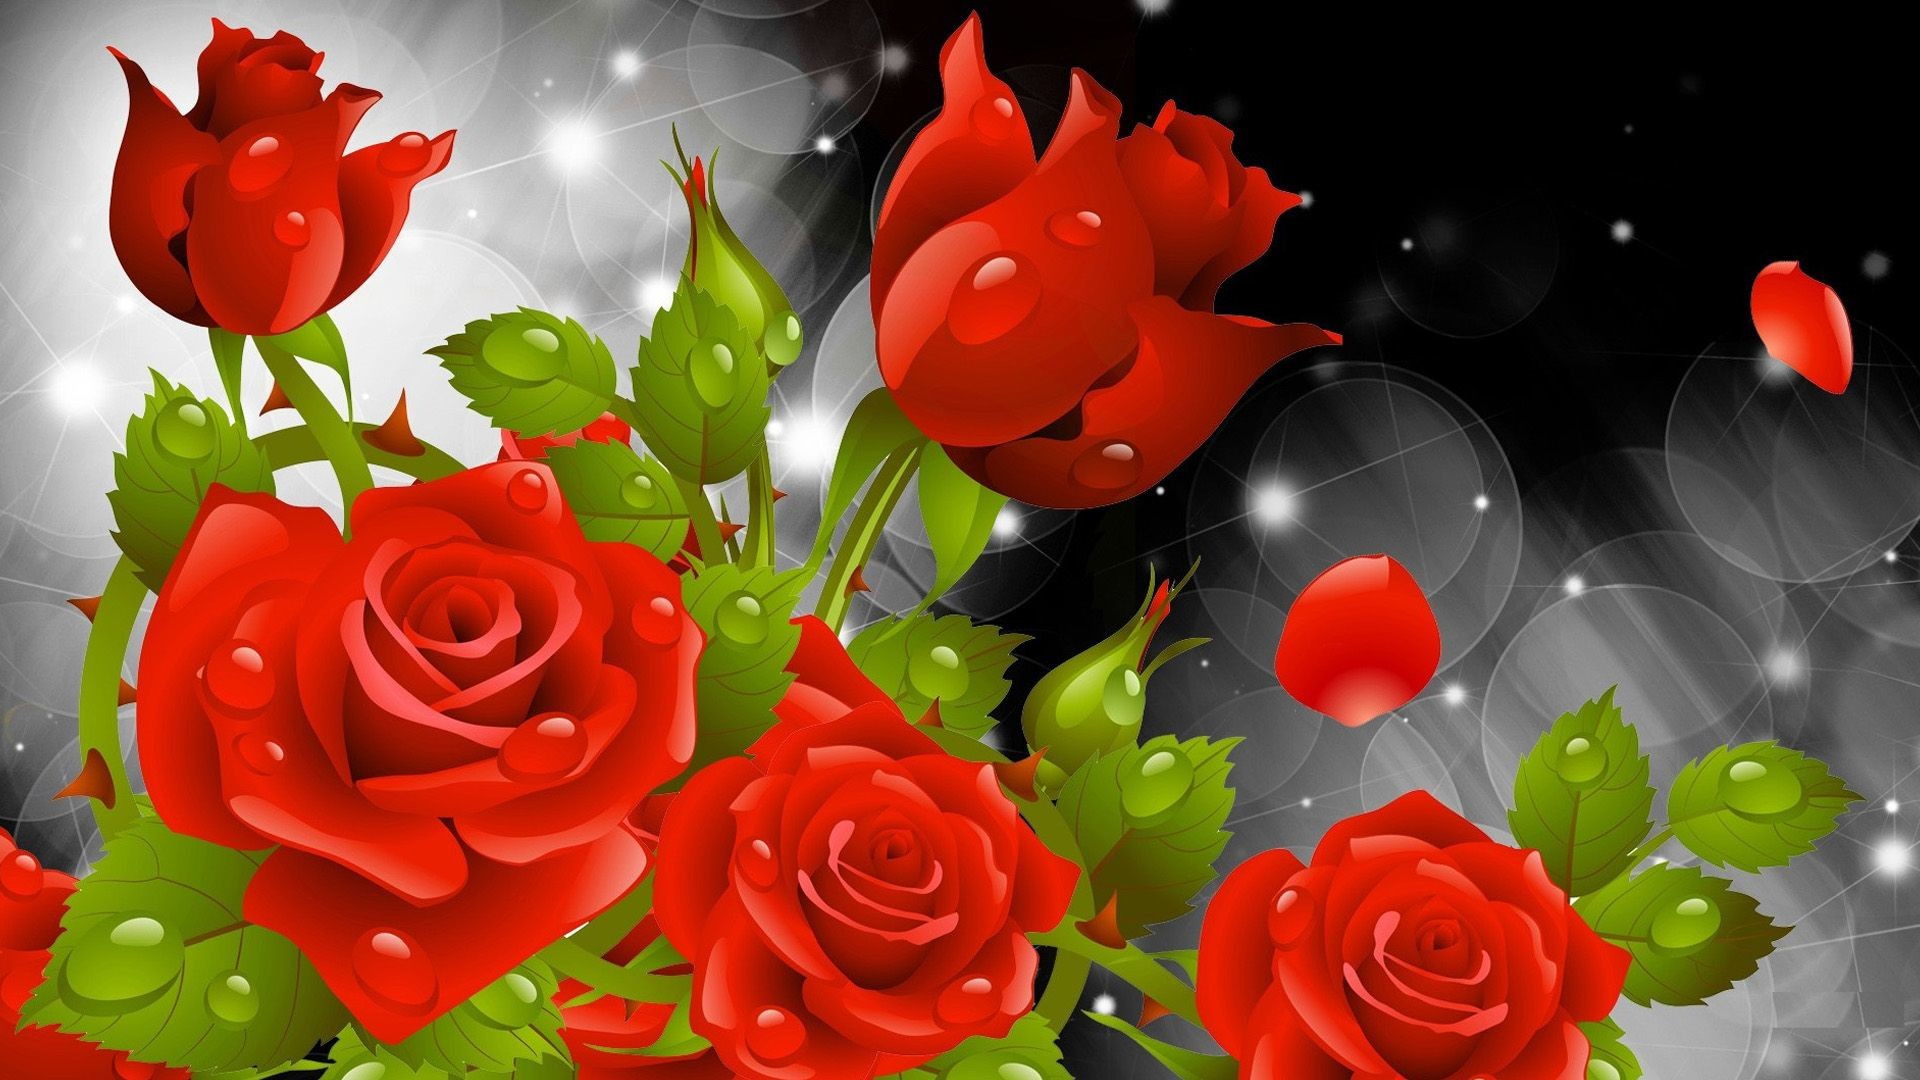 Res: 1920x1080, Red Rose Wallpapers Red Flowers HD Pictures One HD Wallpaper 1280×800 Red Rose Picture Wallpapers (40 Wallpapers) | Adorable Wallpapers